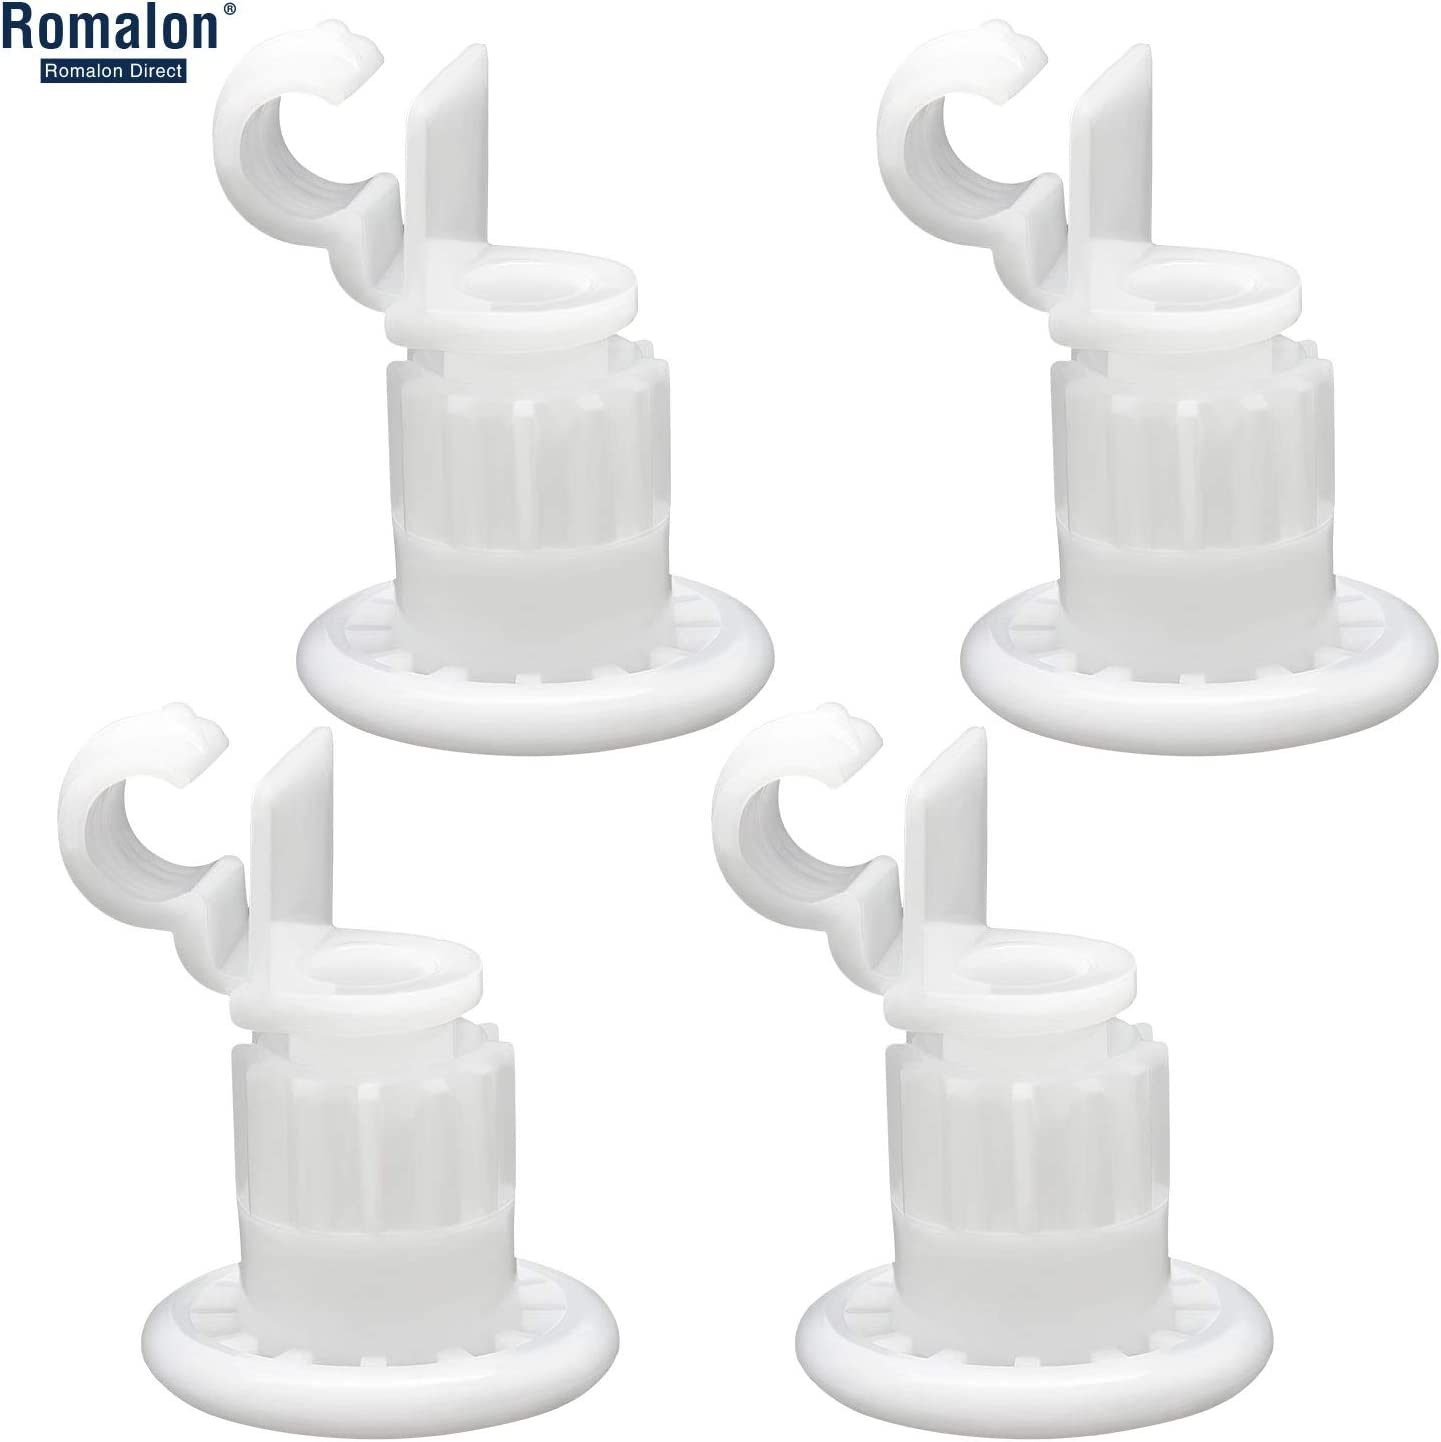 Romalon WD12X10327 DishwasherUpper Rack Roller Wheel Set-4Pack Compatible With General Electric-Replace WD12X10327 WD12X383